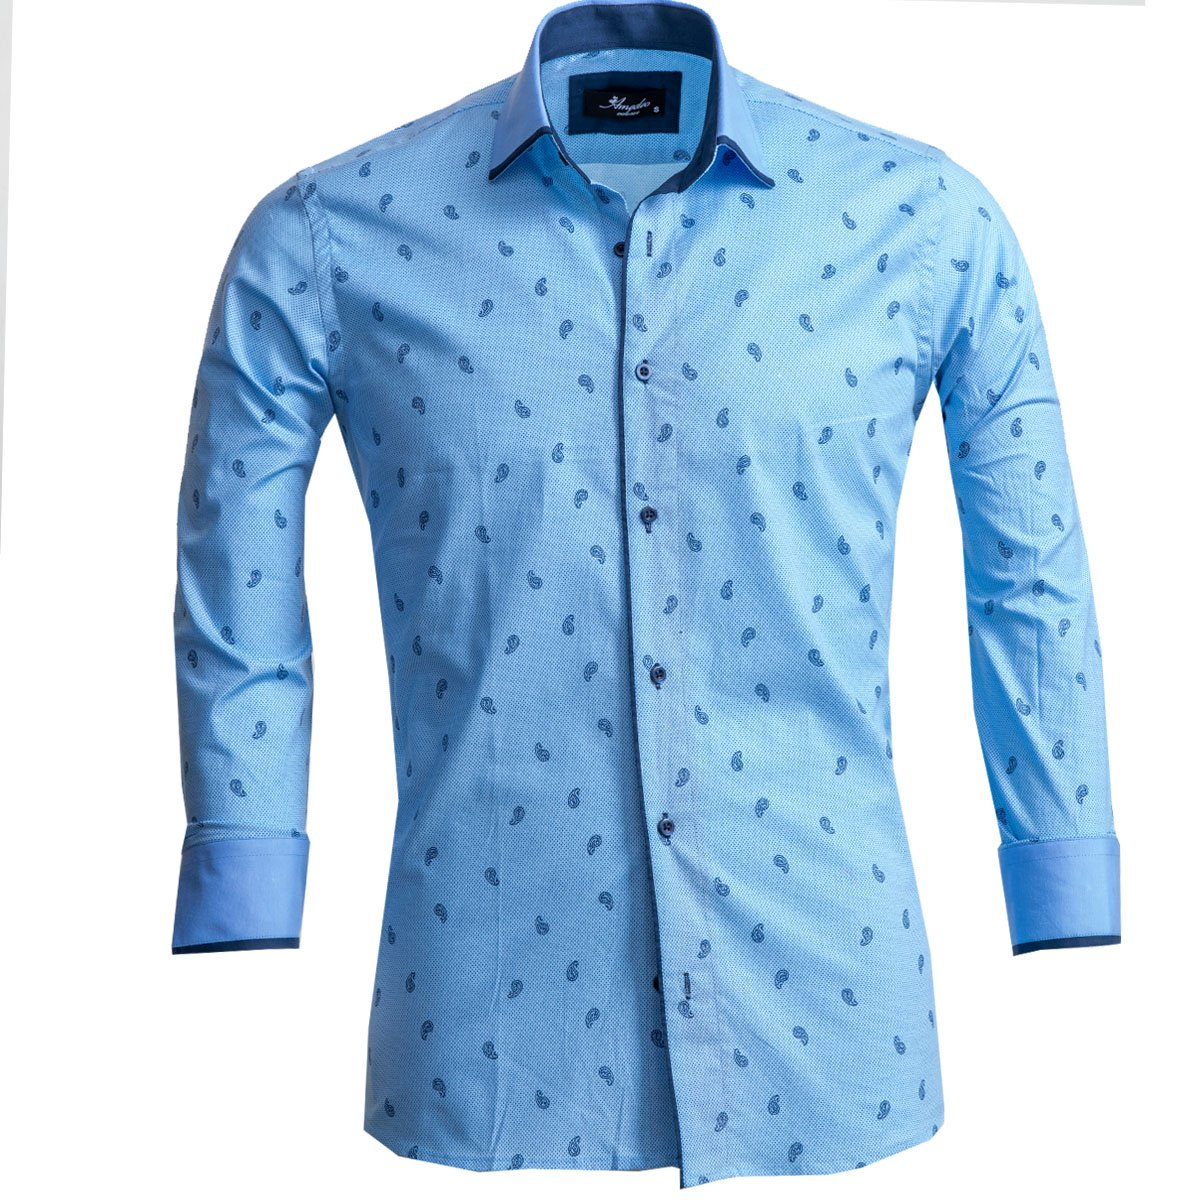 Light Blue Paisley Mens Slim Fit Designer Dress Shirt - tailored Cotton Shirts for Work and Casual - Amedeo Exclusive